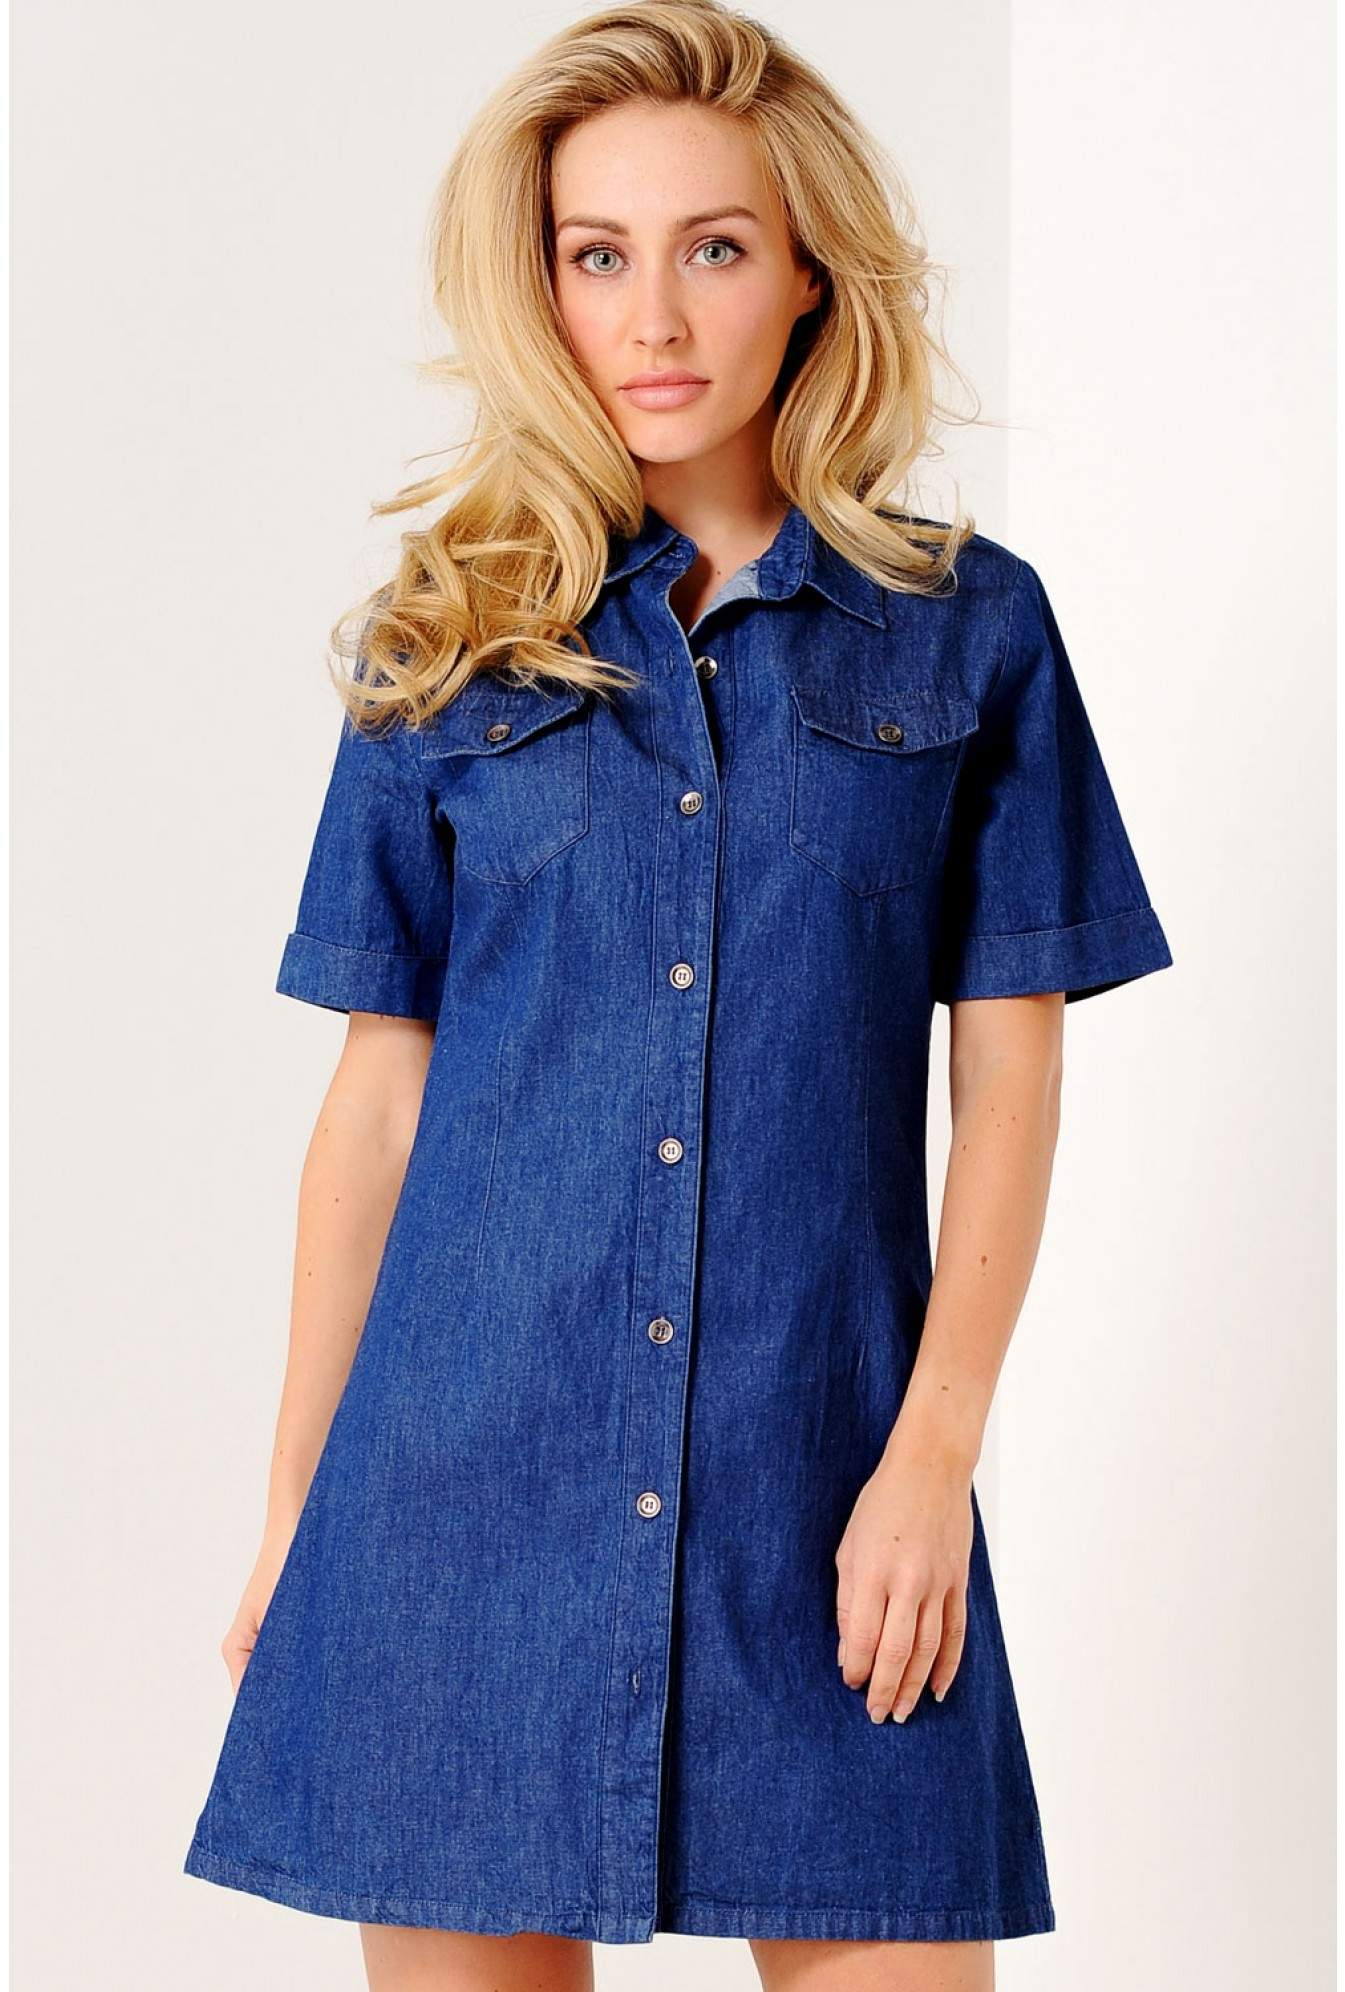 c604e9d1338 More Views. Jordan Denim Shirt Dress